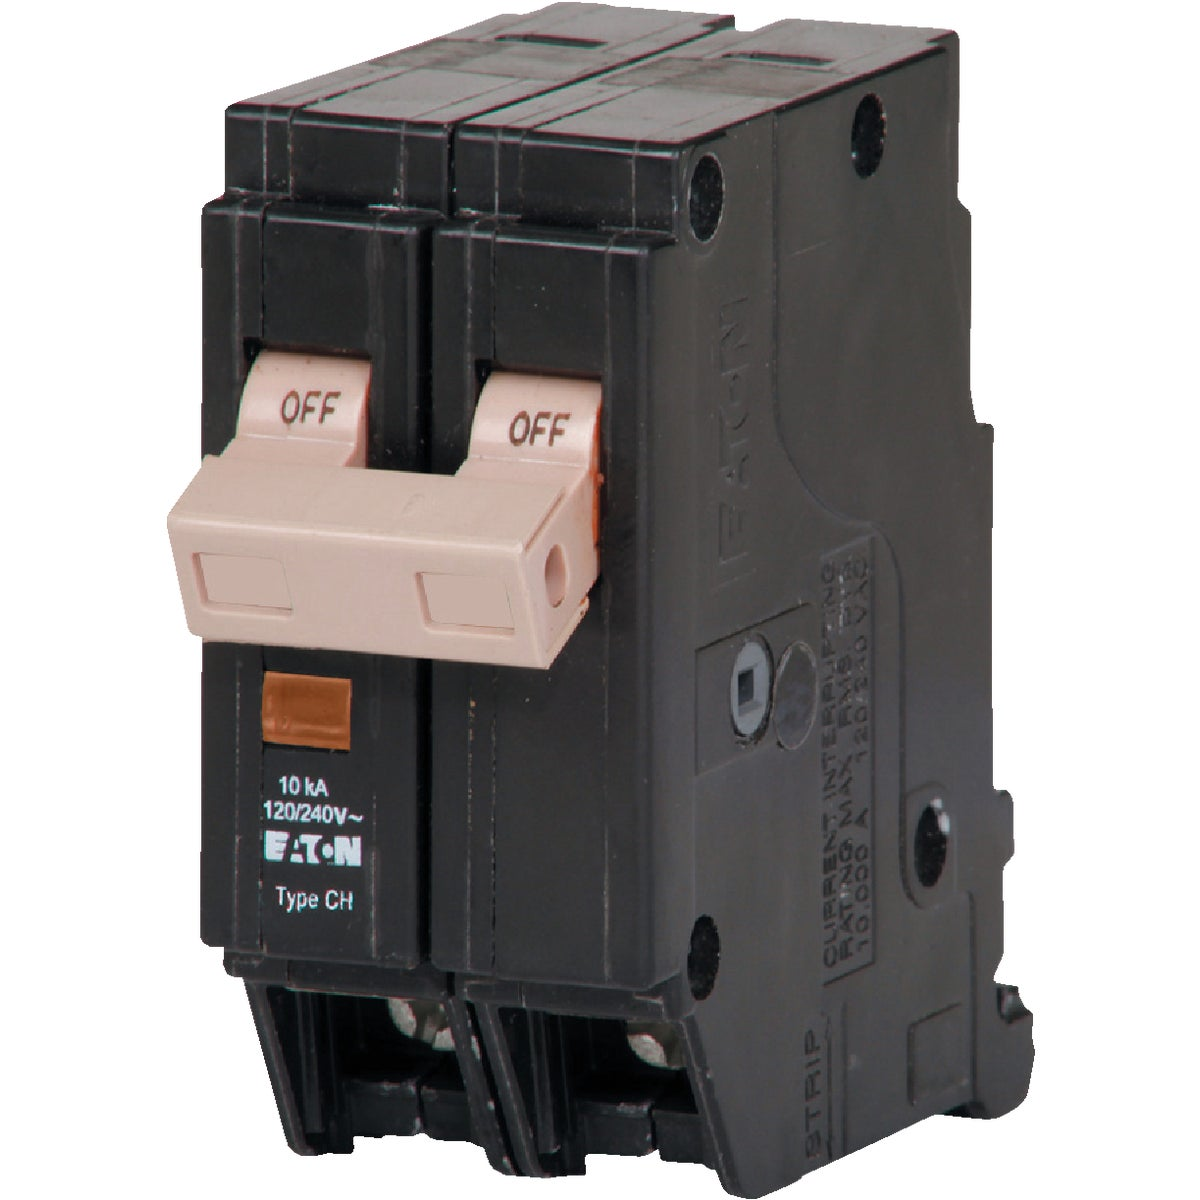 15A DP CIRCUIT BREAKER - CHF215 by Eaton Corporation